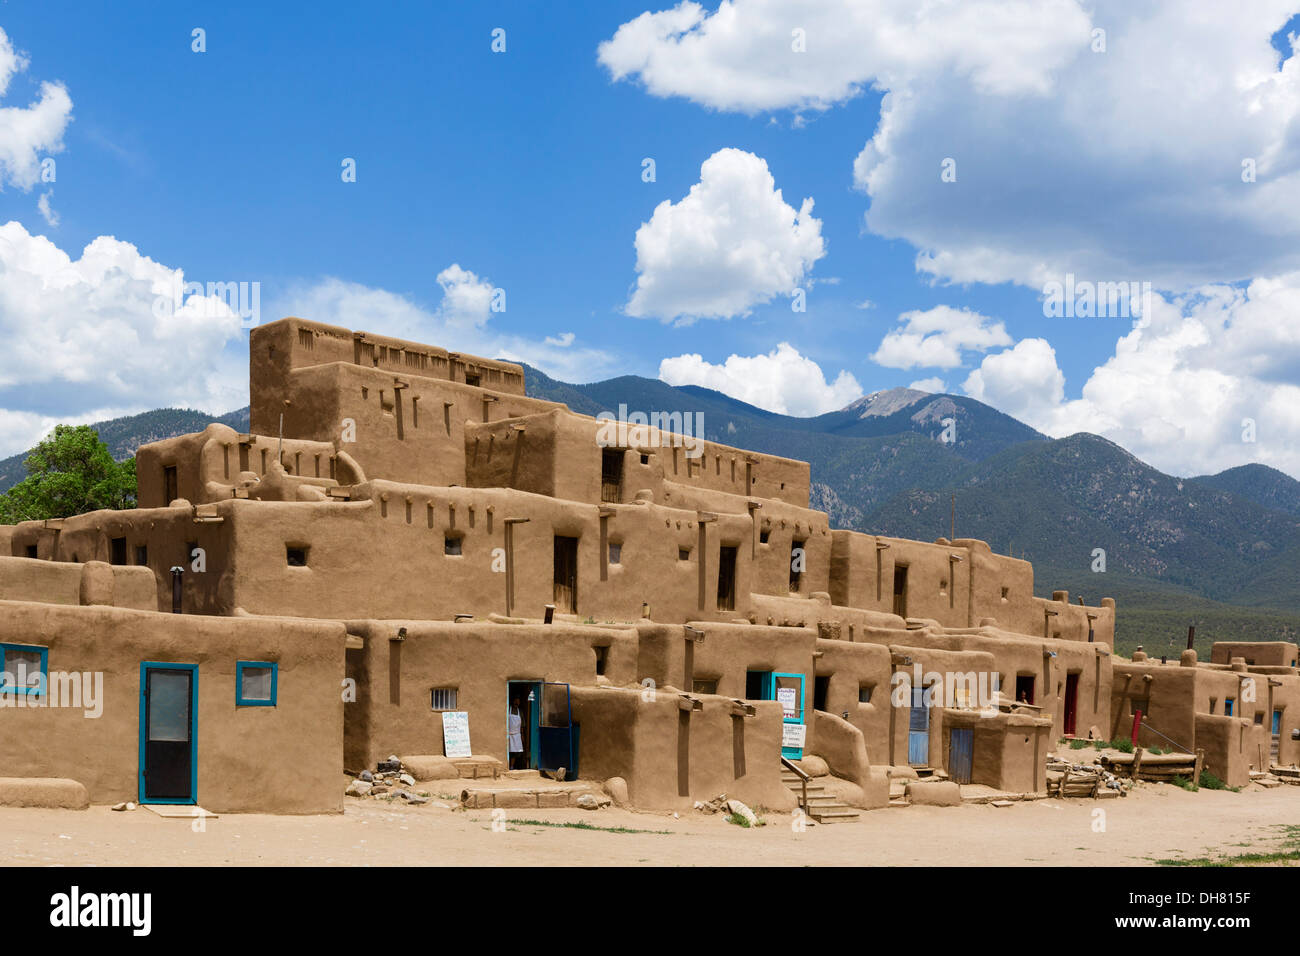 The Hlaauma (North House) native american dwellings in historic ...